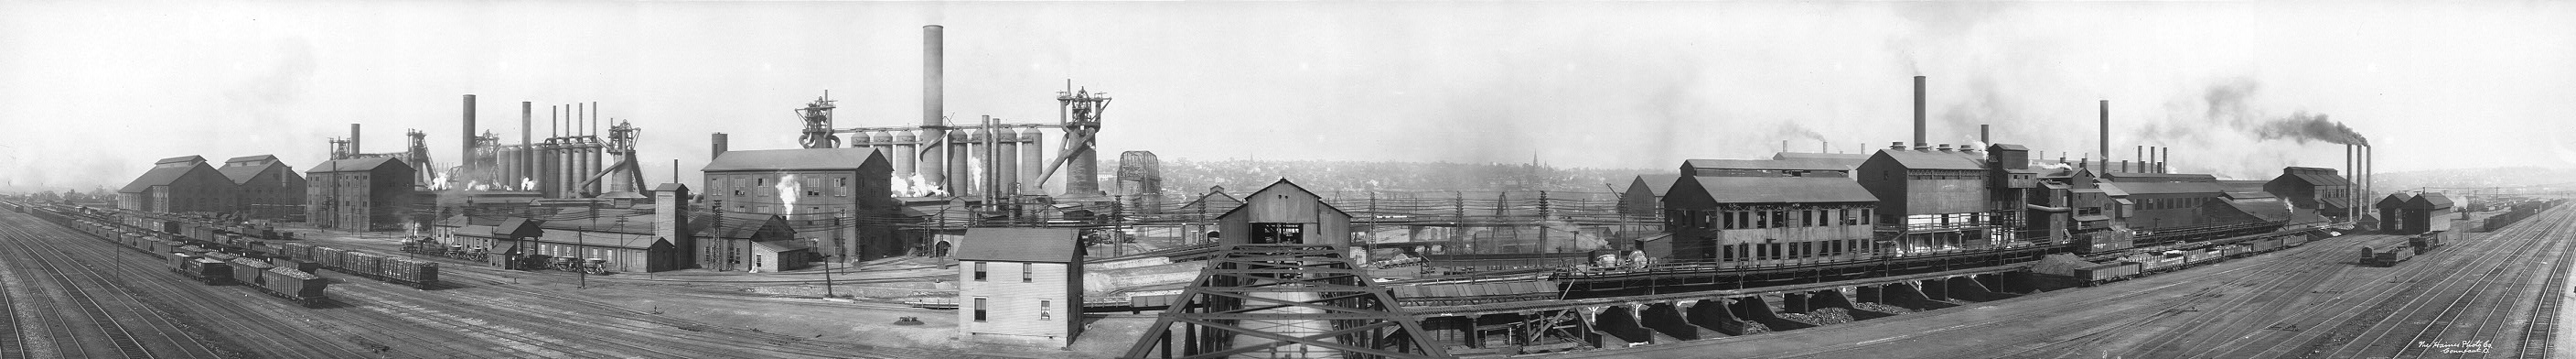 Carnegie Steel Works, Youngstown, Ohio, 1910